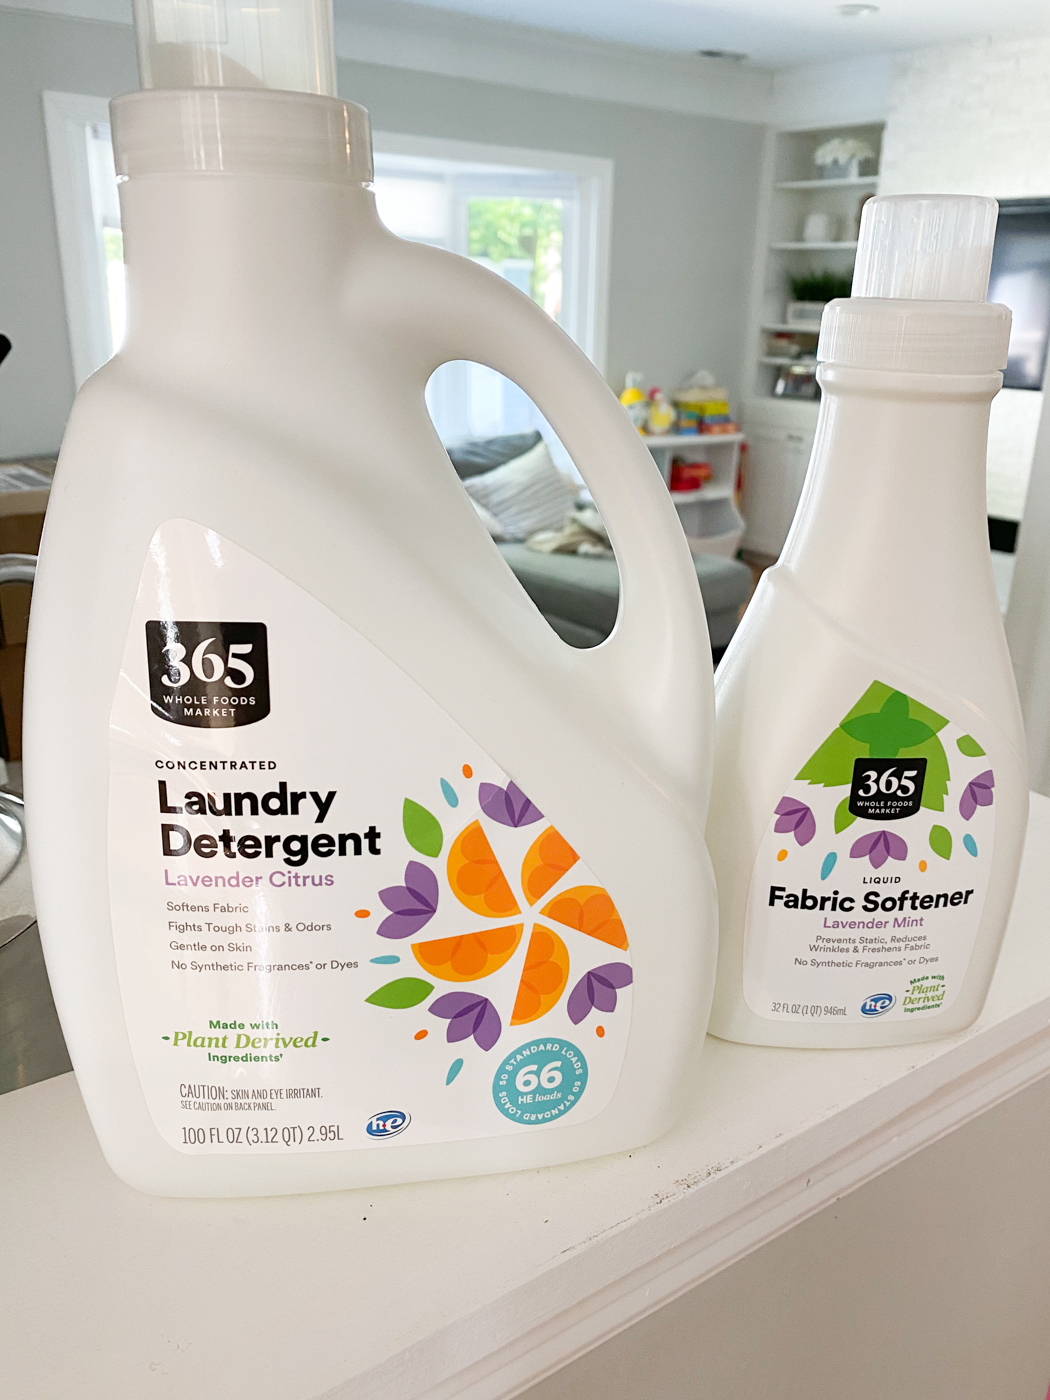 Whole Foods 365 Laundry Detergent and Softener | Nontoxic Living Laundry Products That Work | My favorite nontoxic living products